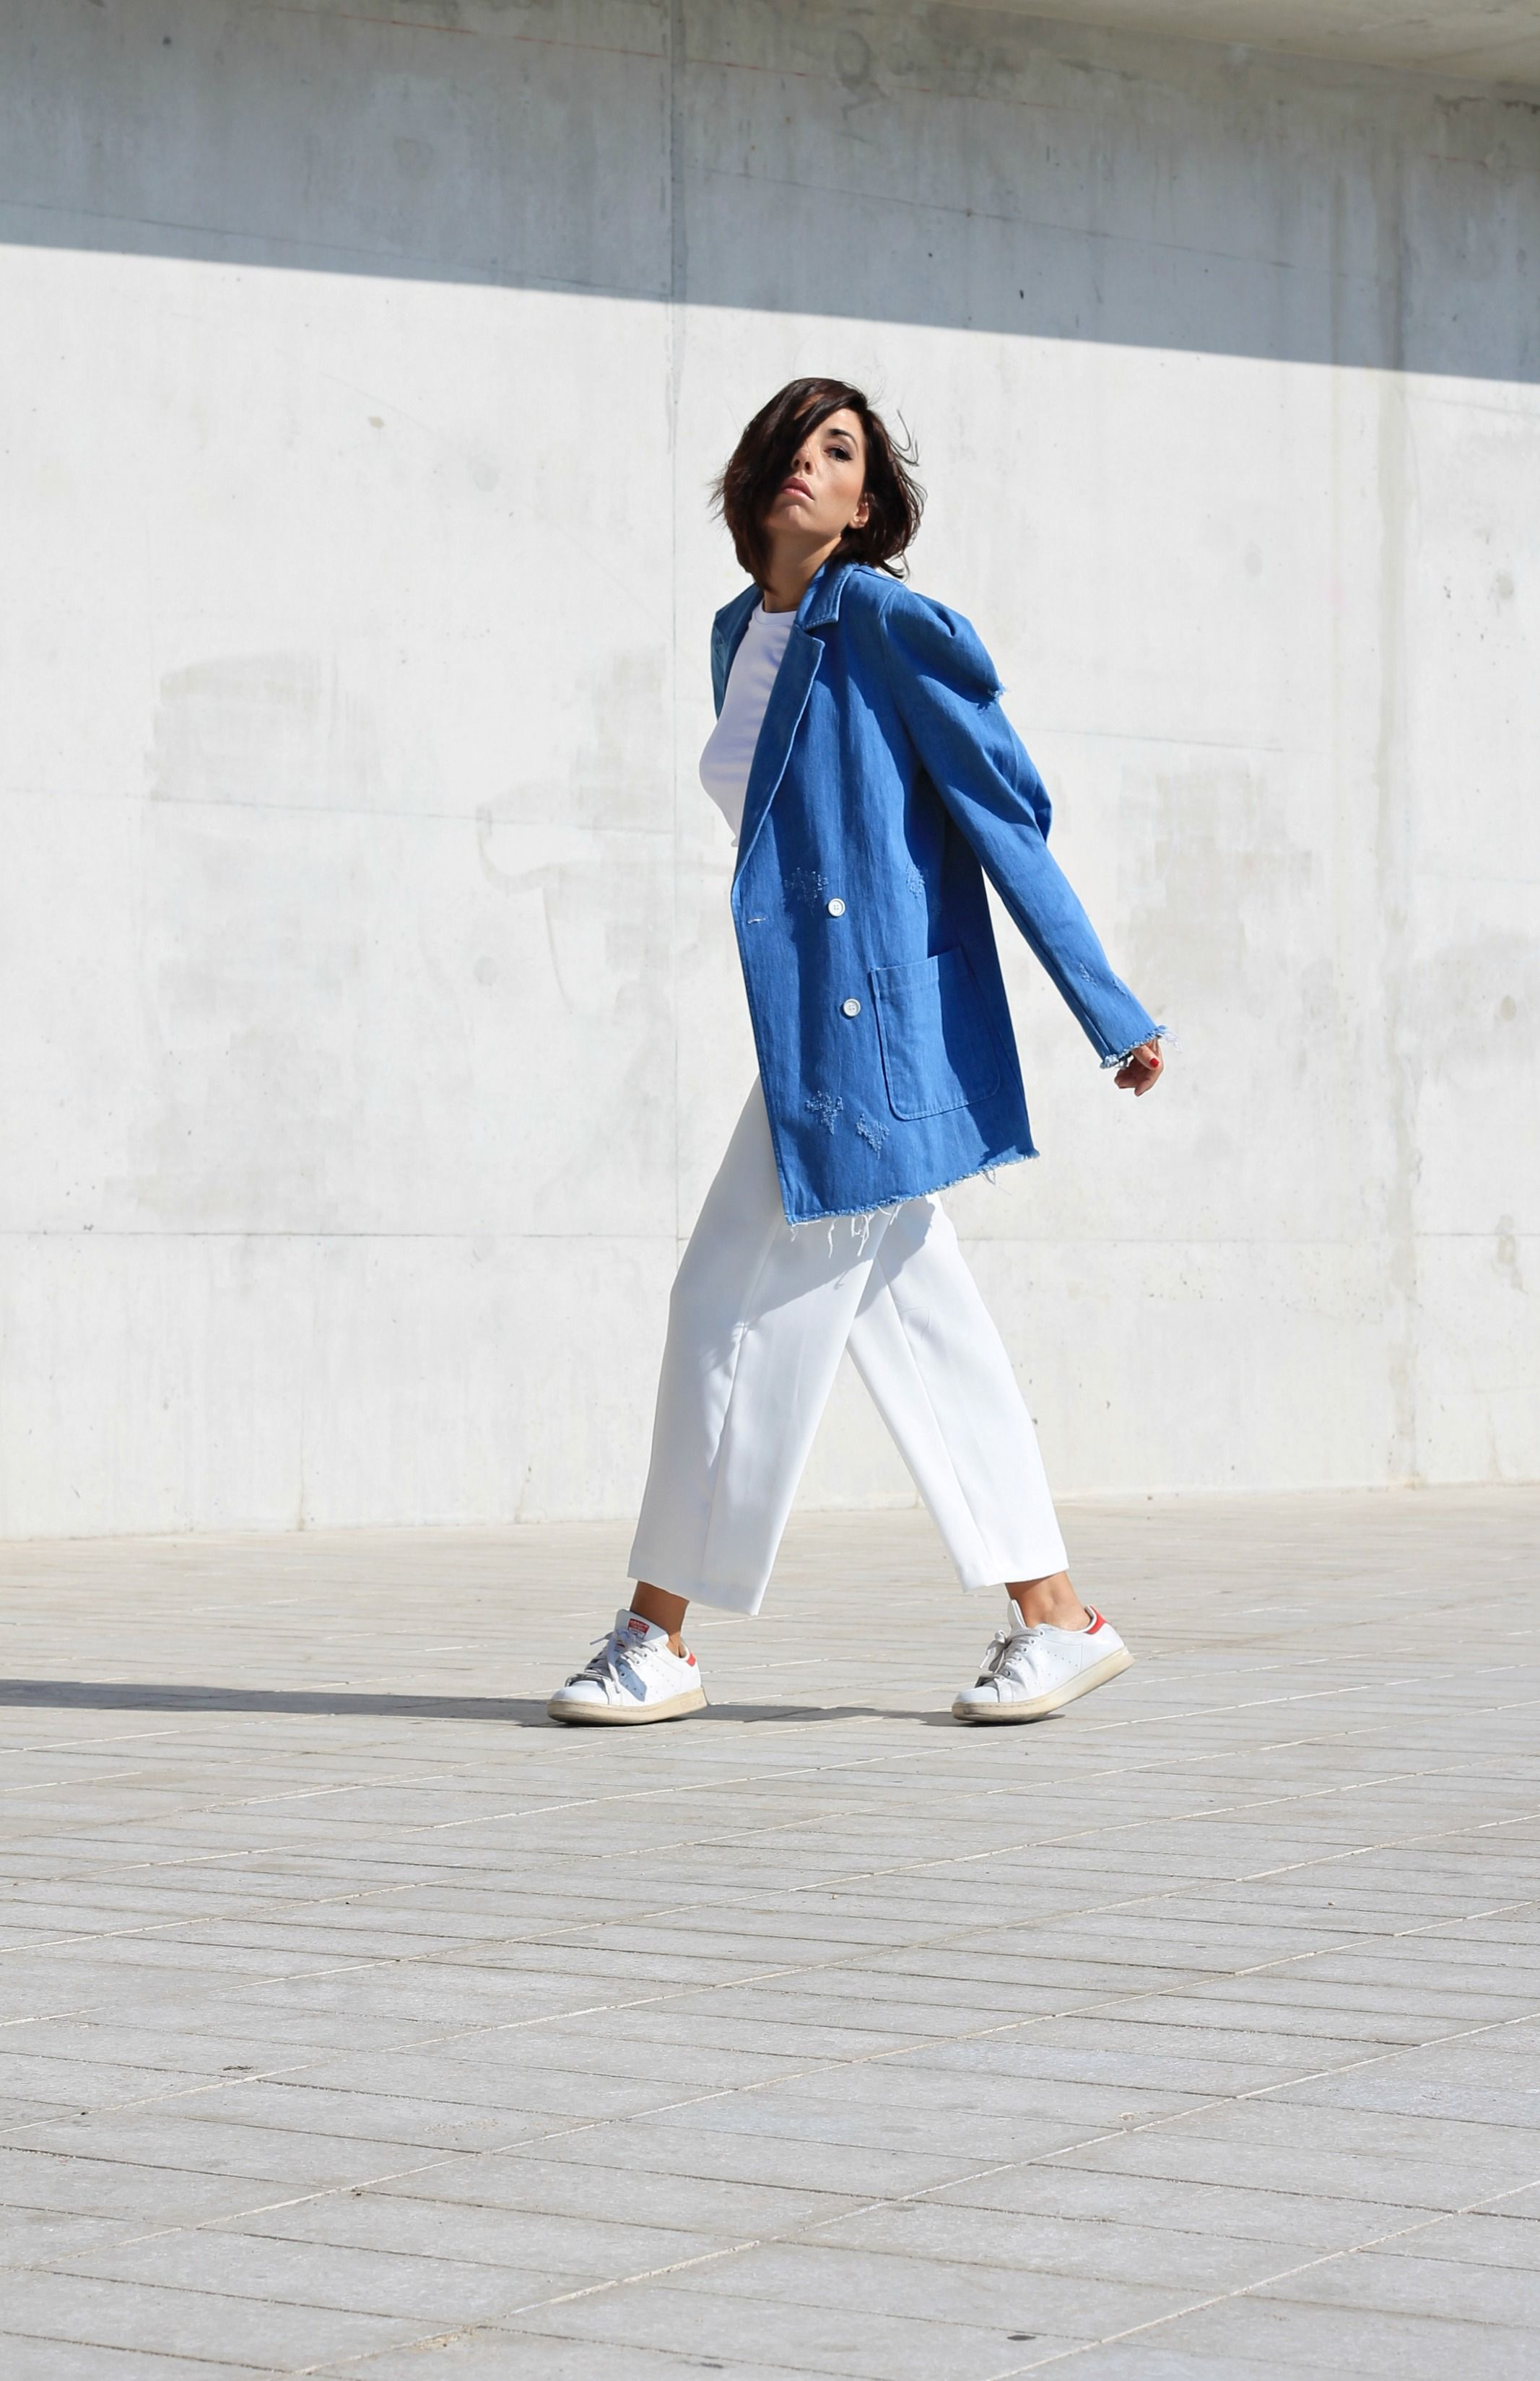 L'ironia è una cosa seria, theladycracy.it, elisa bellino, fashion blog italia, fashion blog italiani 2017, blogger moda outfit 2017, casual chic outfit 2017, thefrankieshop blogger influencer 2017, chic look blogger 2017, giacca spalle larghe donna 2017, influencer moda italiane 2017, fashion blogger famose 2017, fashion blogger più seguite 2017